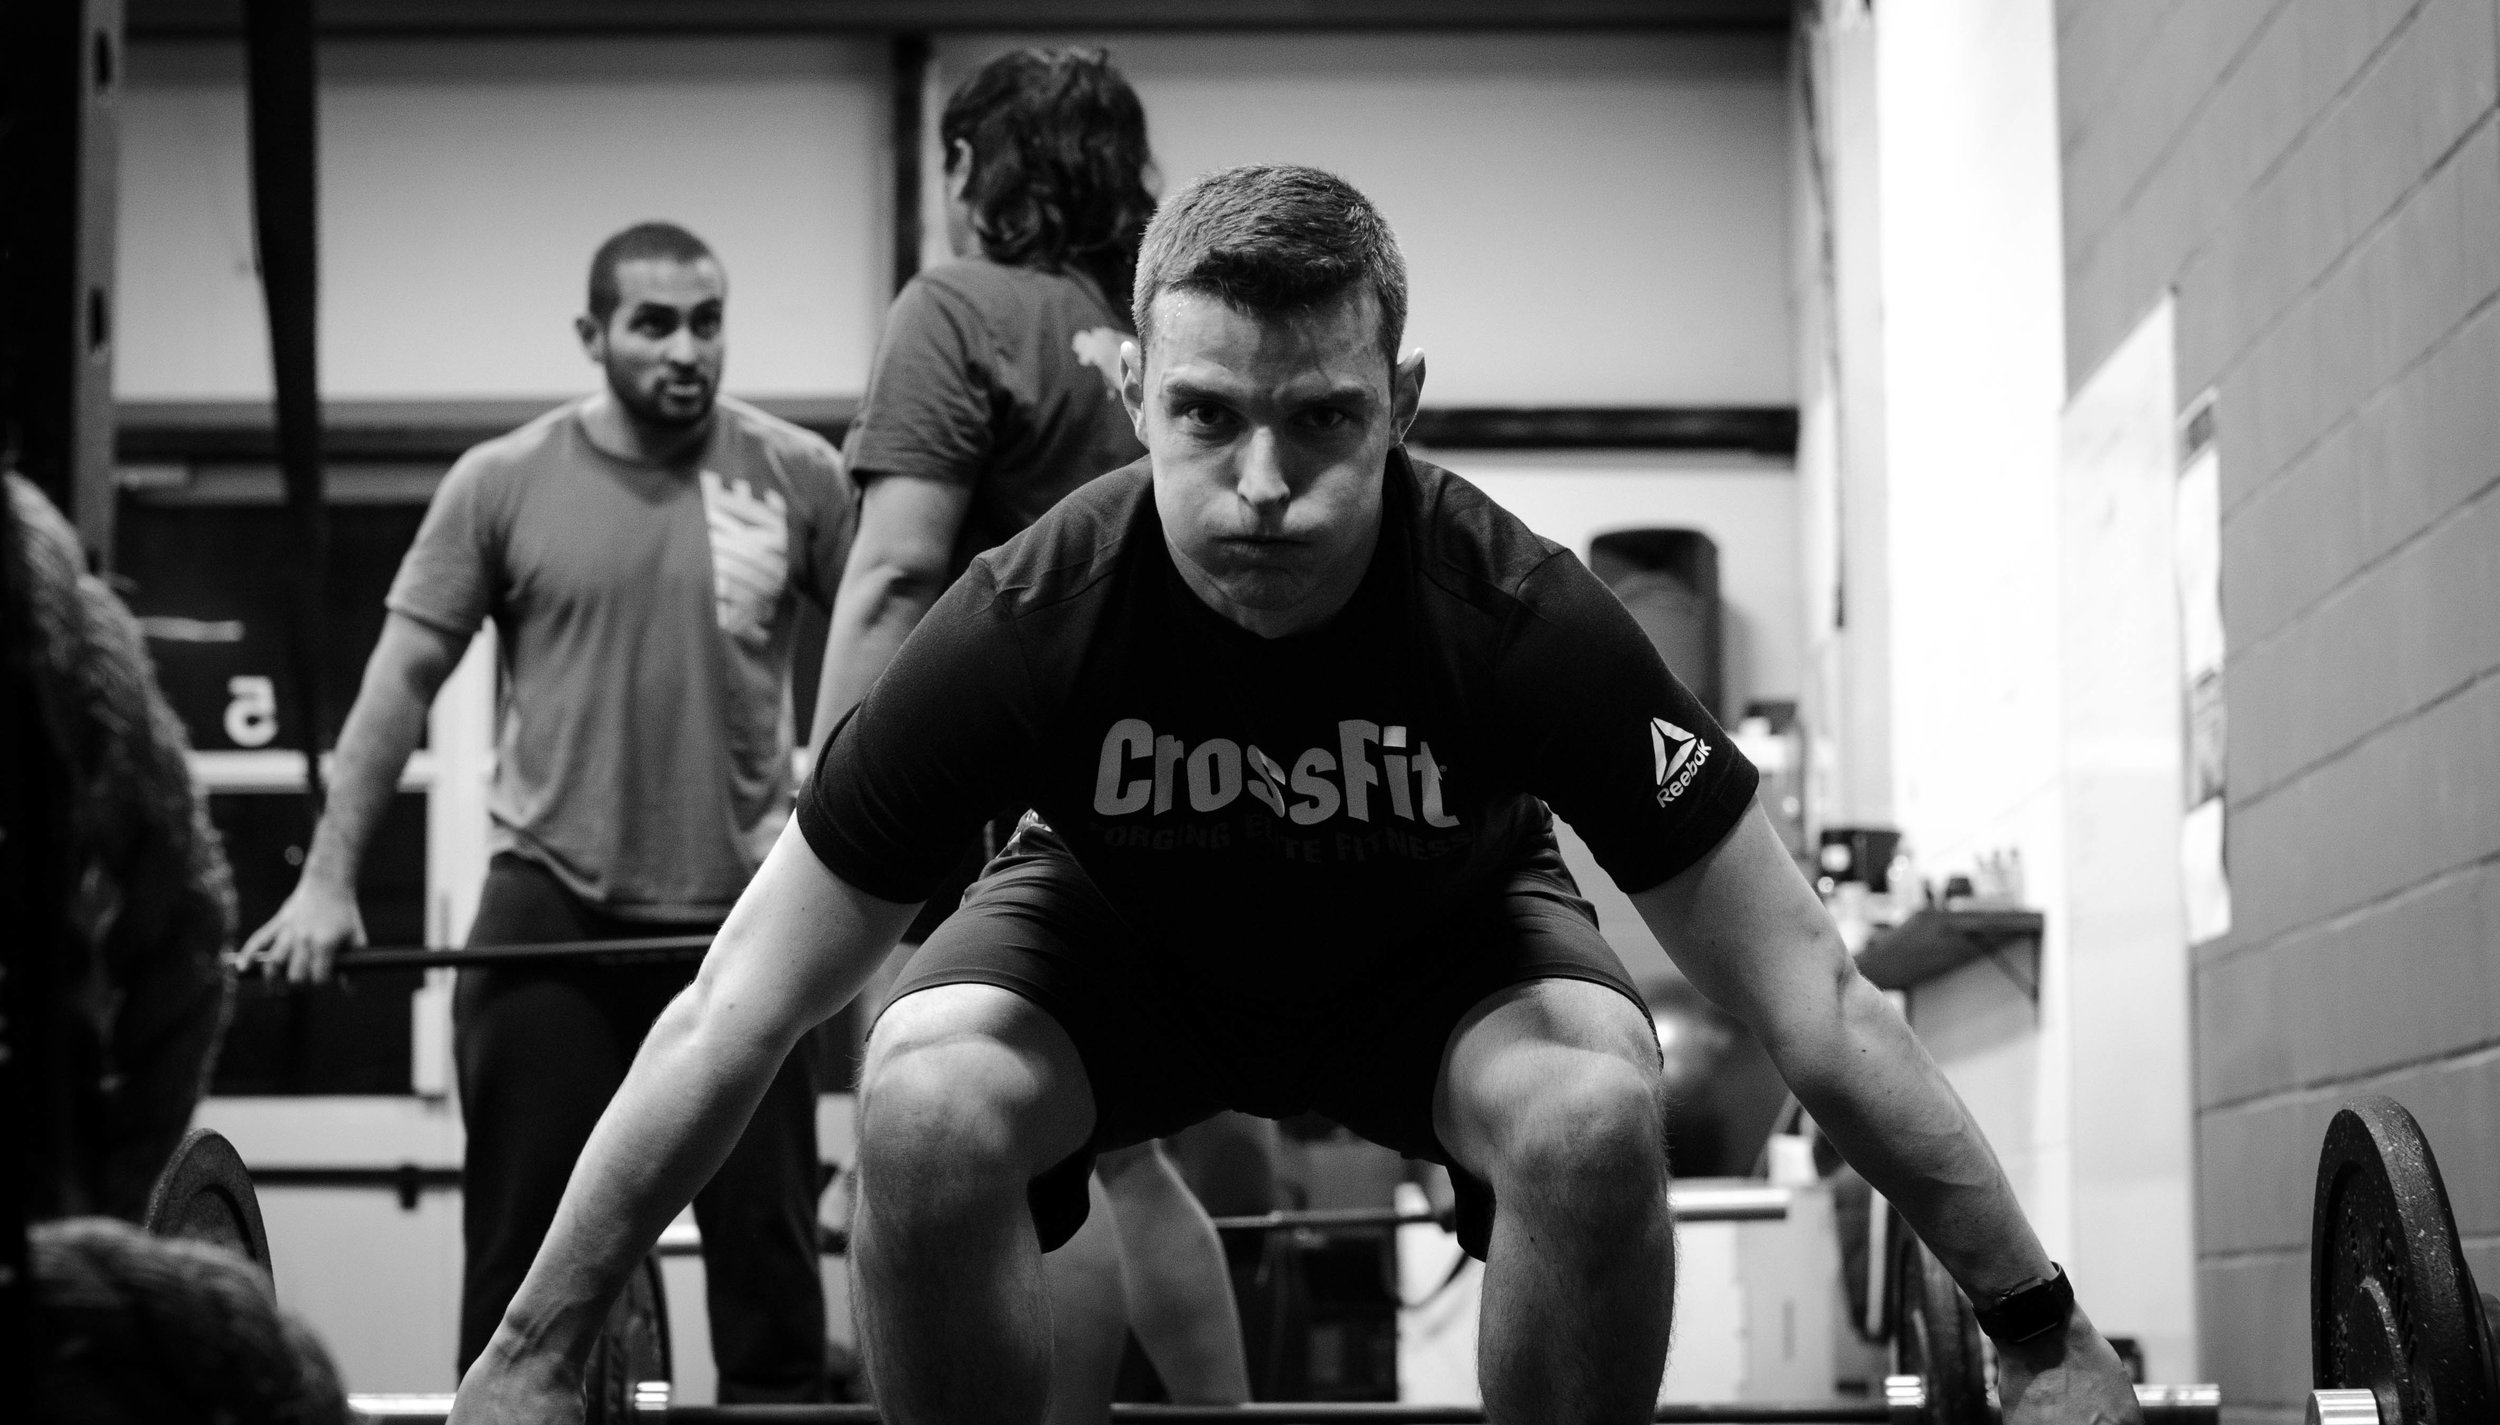 snatch-setup-crossfit.jpg